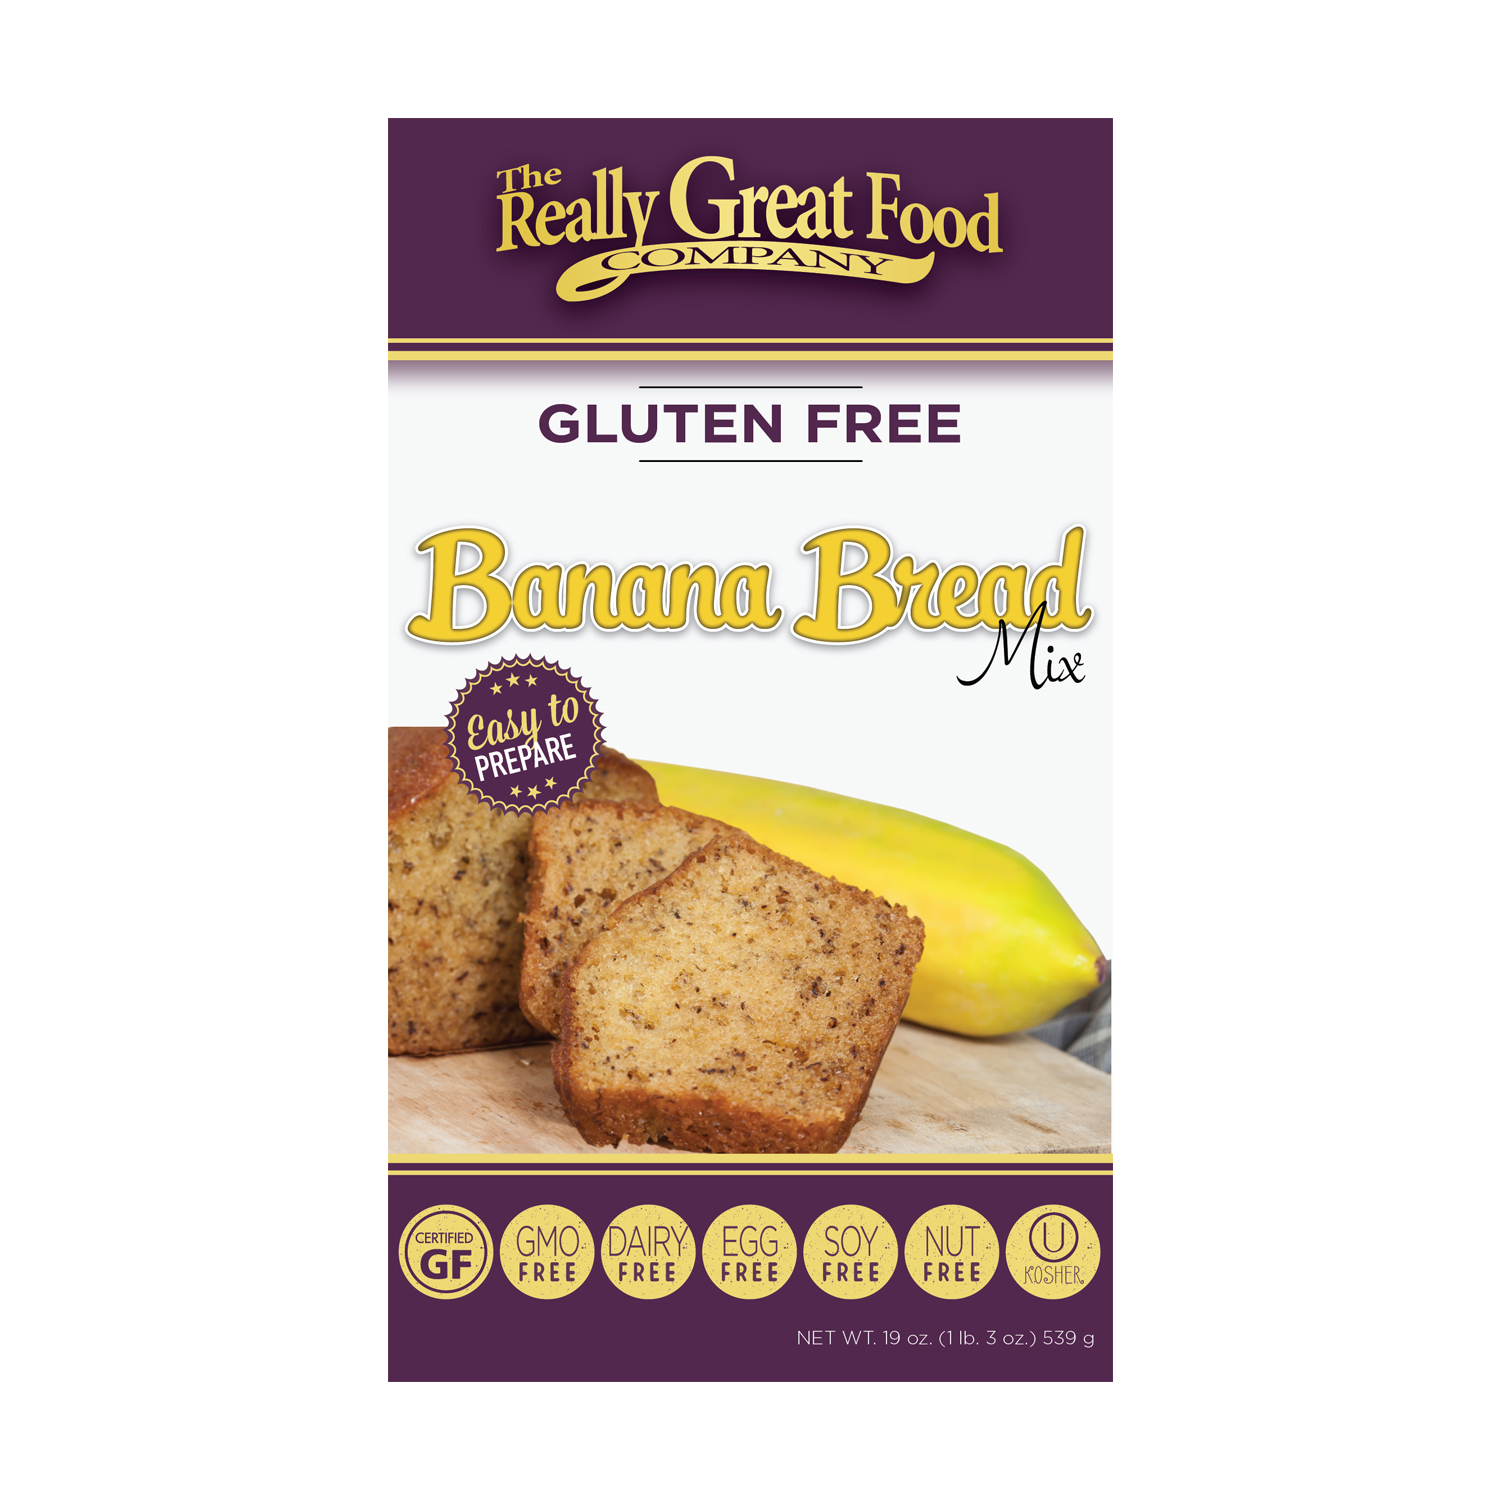 Gluten Free Banana Bread Mix